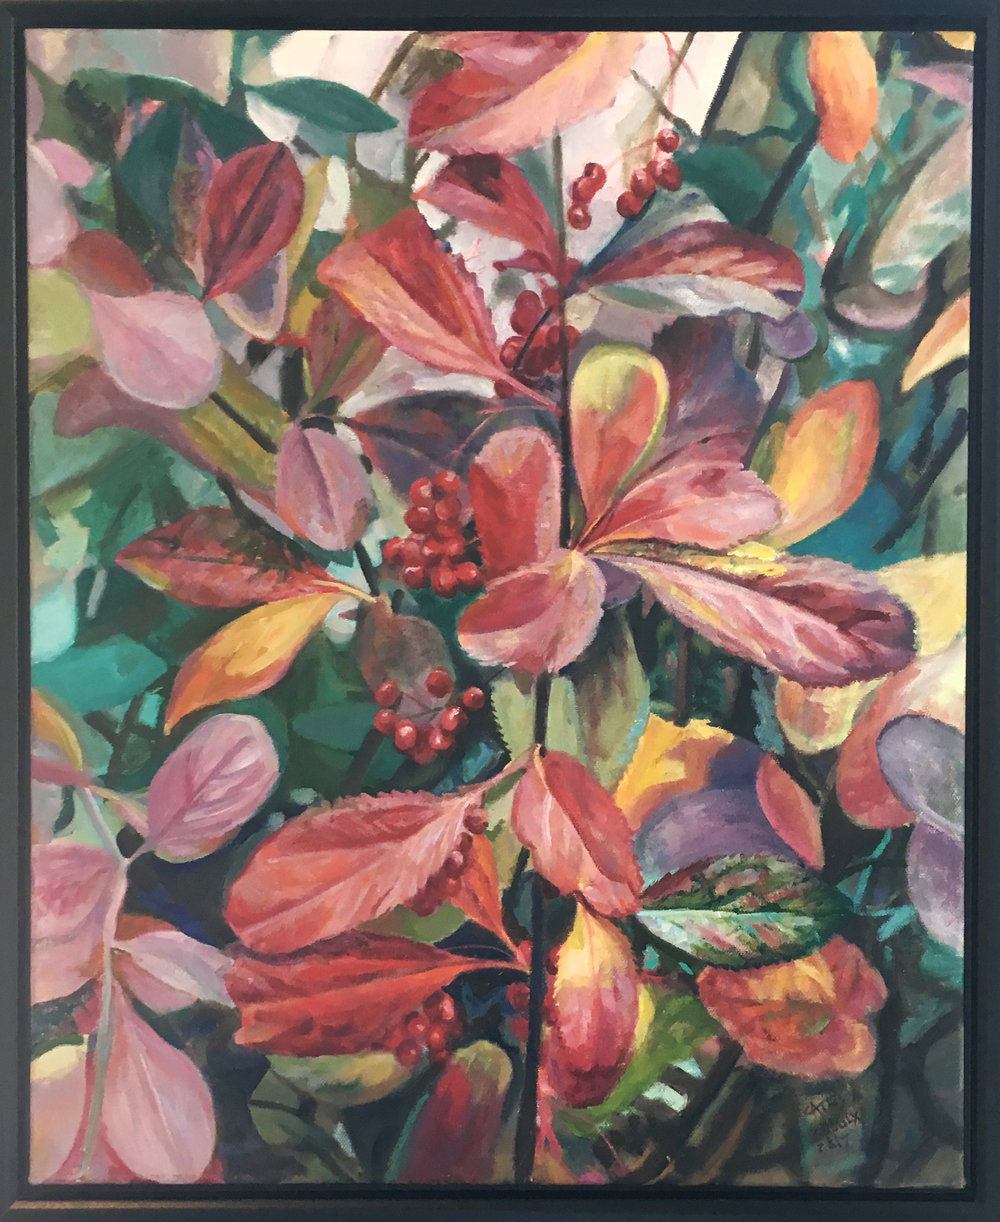 Barberry Hedge by Cathy Groulx